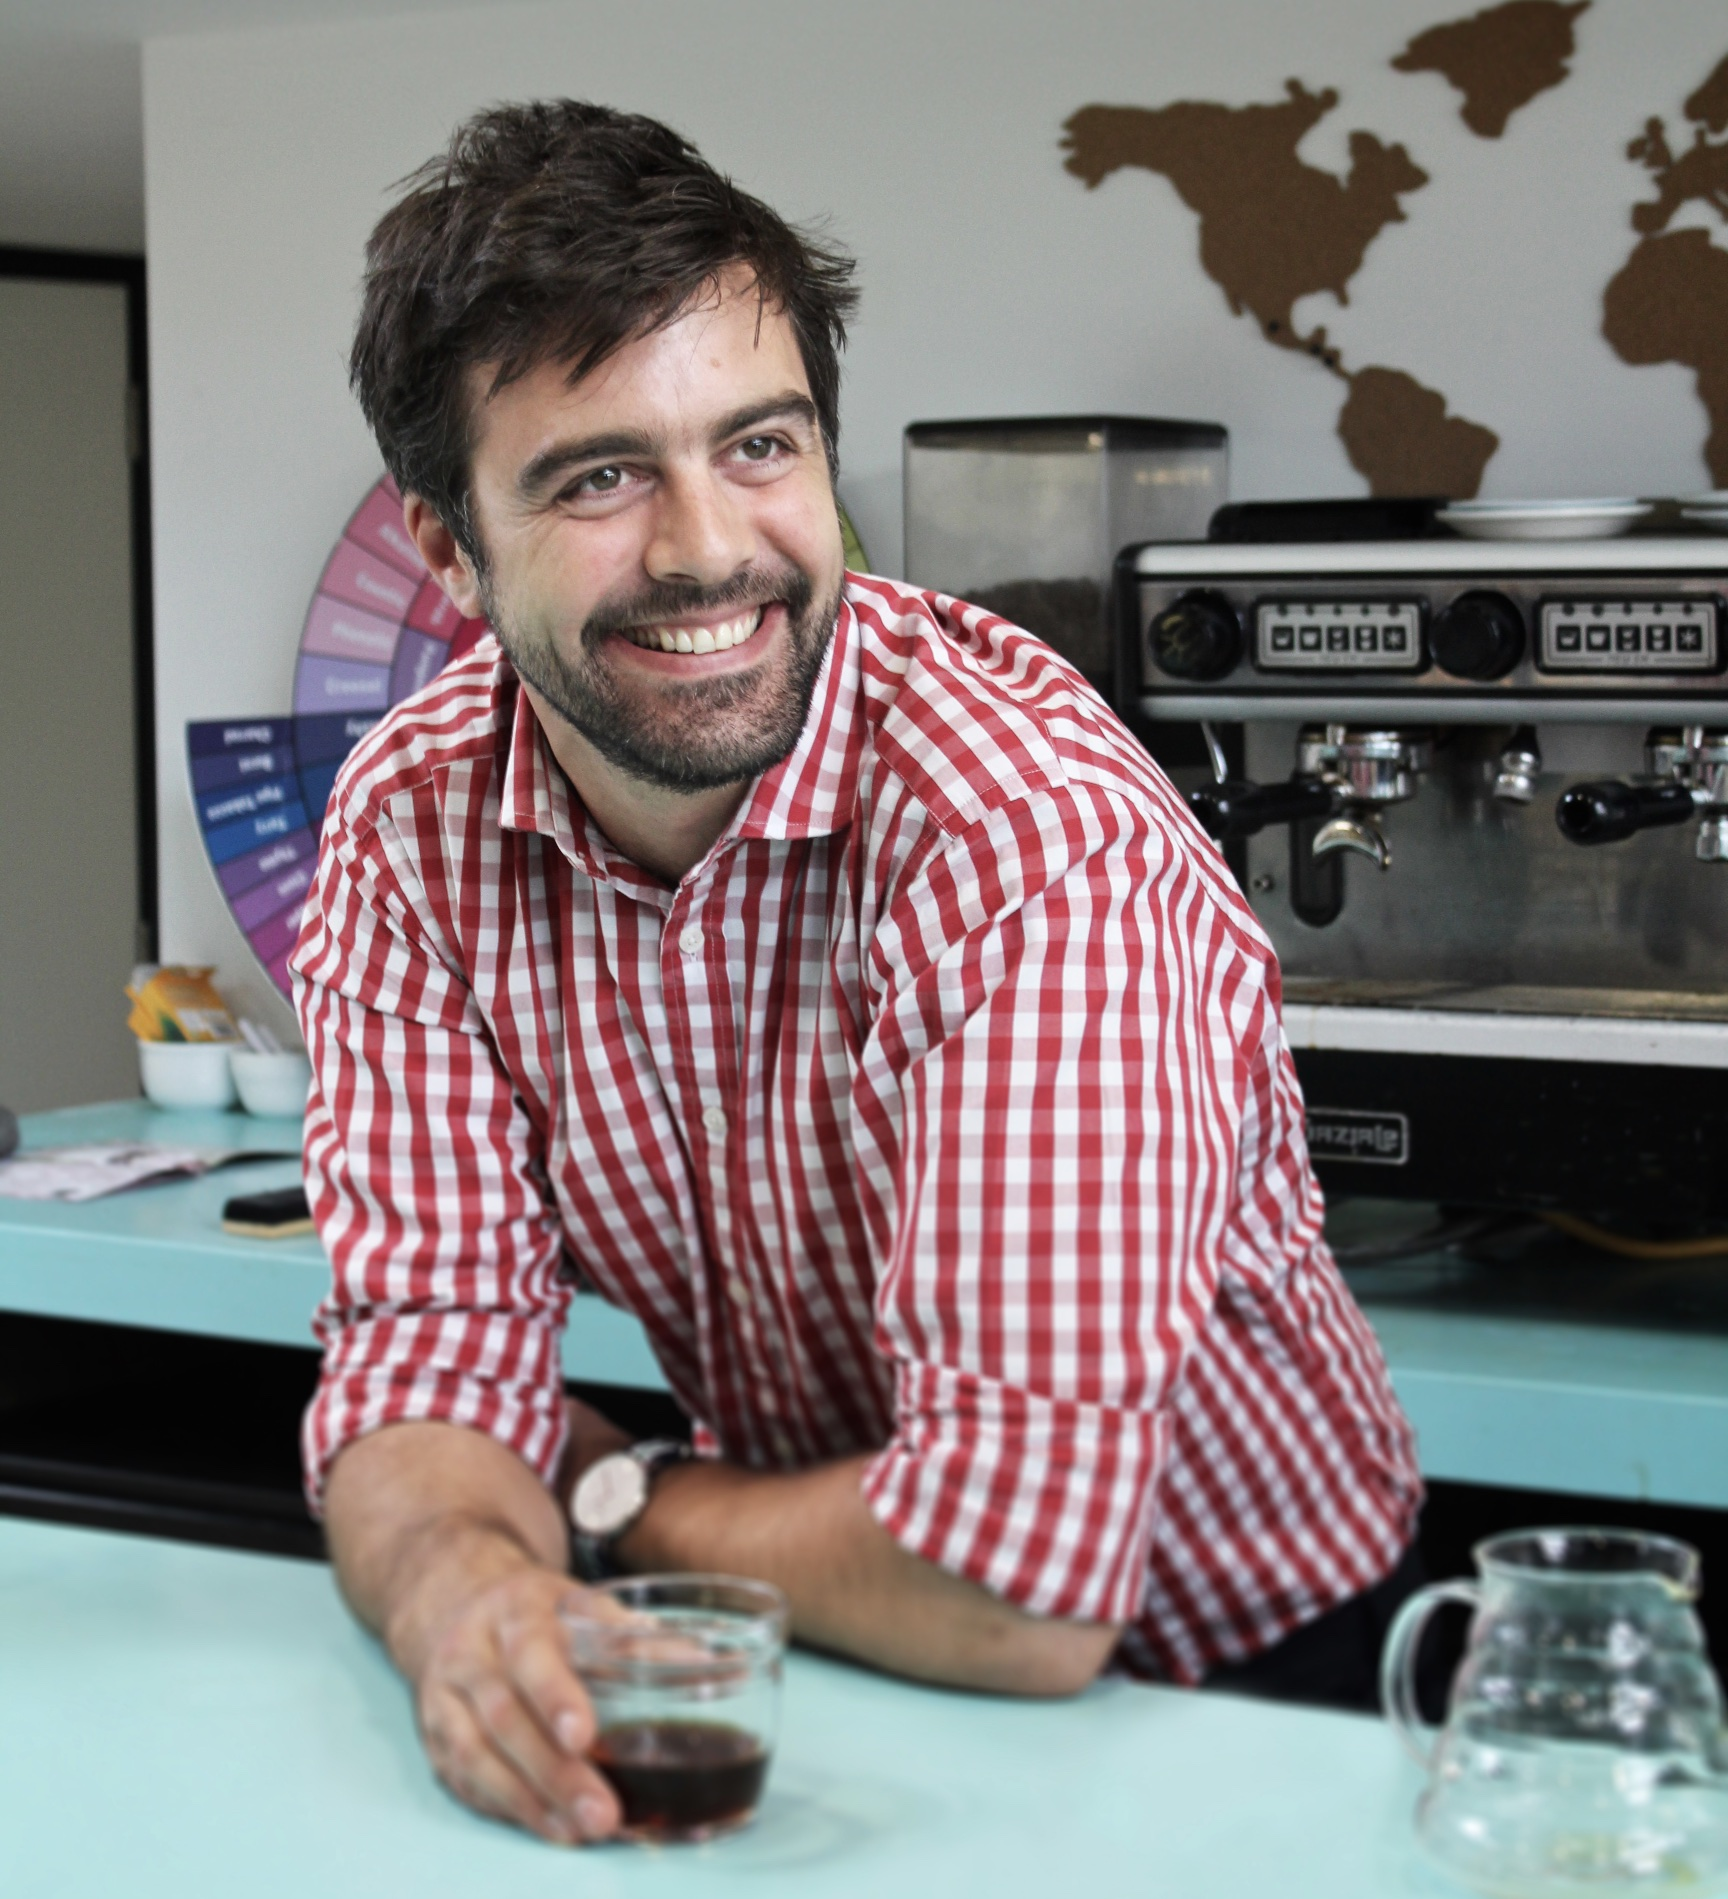 Pact Coffee founder steps down from CEO role as London startup looks to B2B for growth